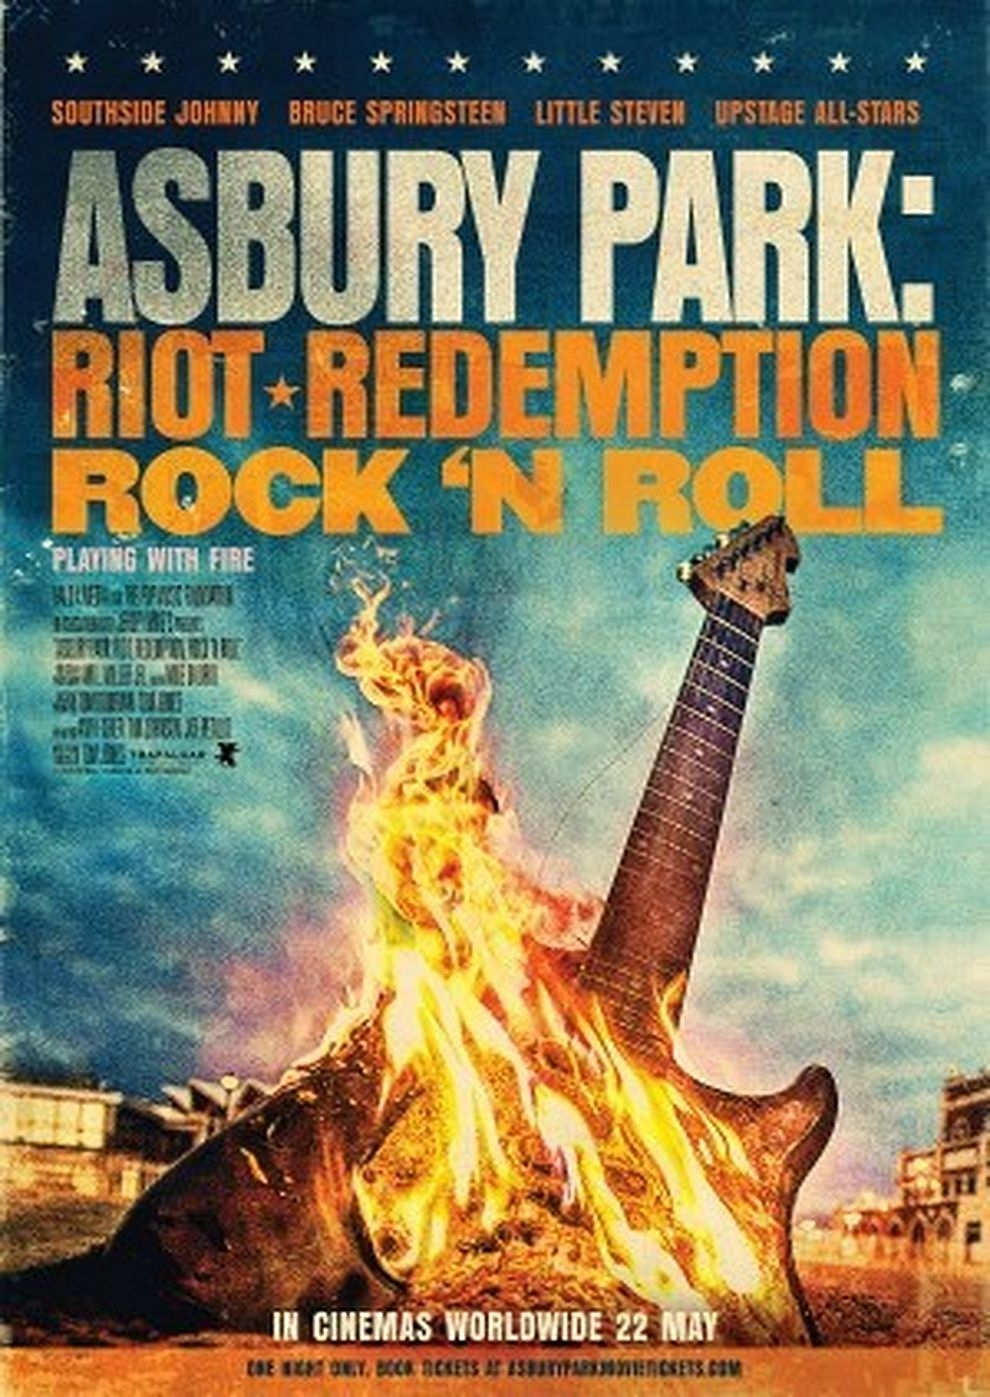 Asbury Park: Riot, Redemption, Rock 'N Roll (Poster)